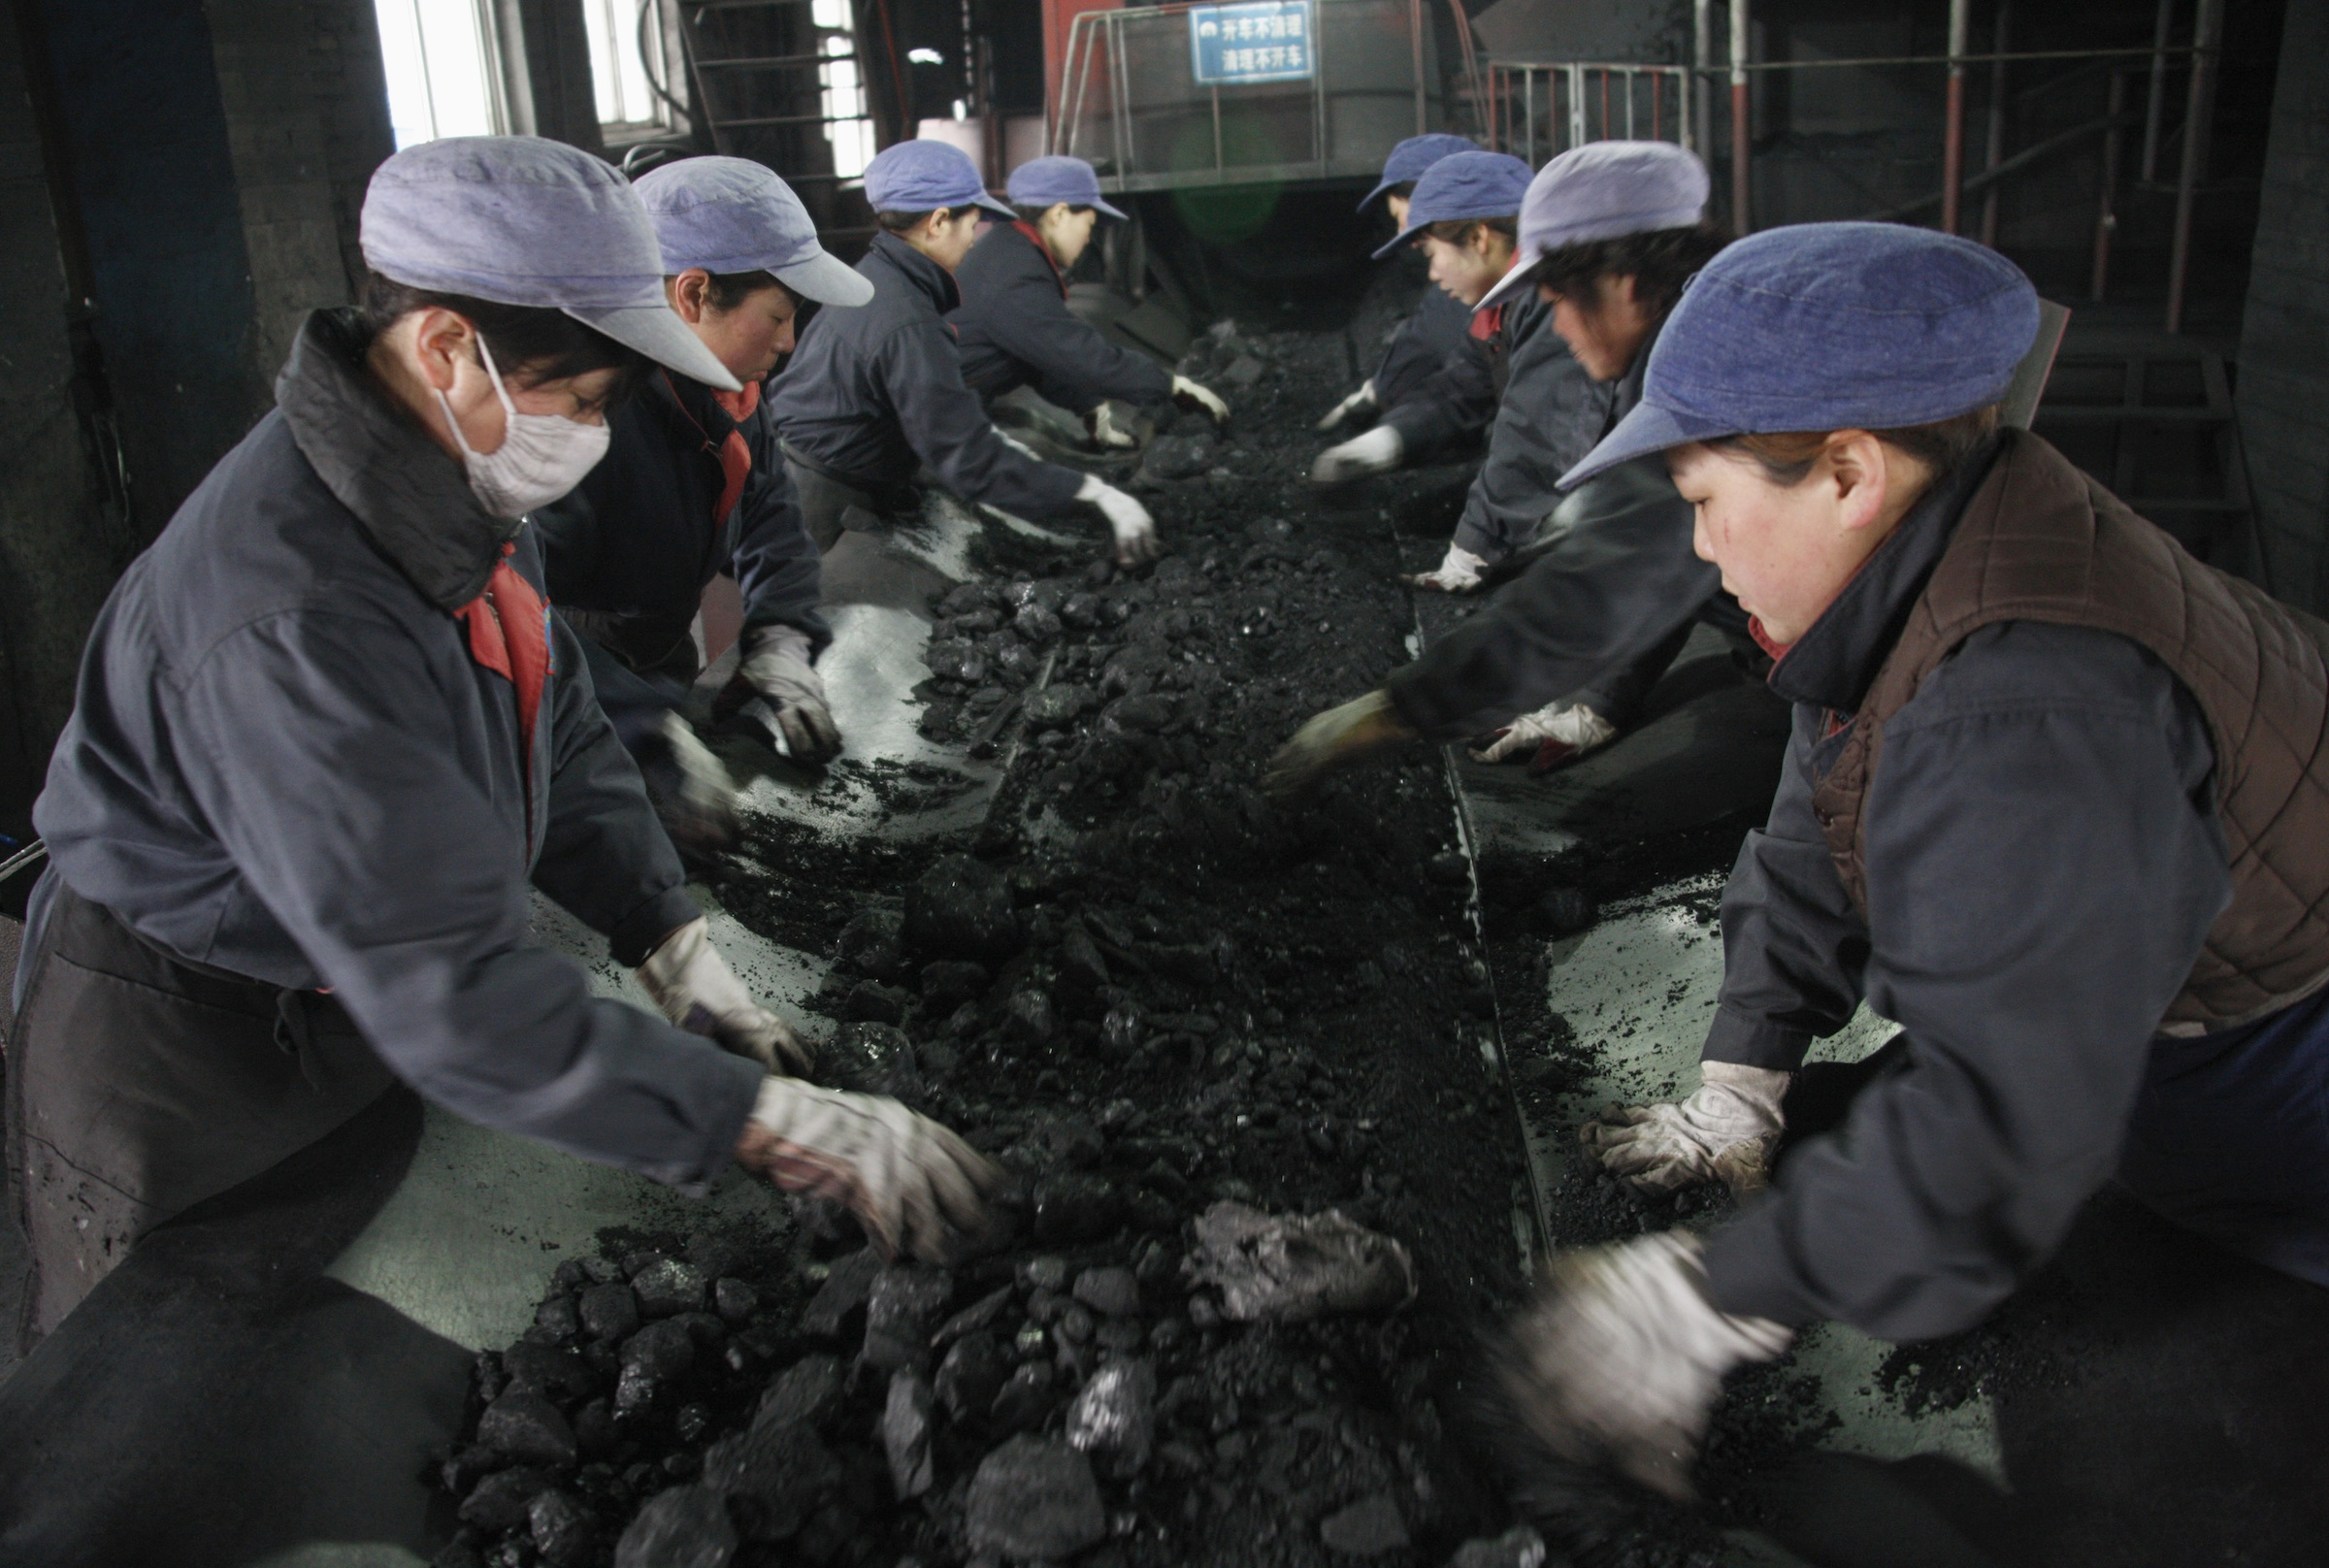 Labourers filter out stones from cinder at a workshop of a coal mine's coal washery in Huaibei, Anhui province March 8, 2010. This year China is targeting national coal output of 3.15 billion tonnes, a 3.3 percent increase, the country's economic planning ministry, the National Development and Reform Commmission, said in its annual economic plan on March 5.  REUTERS/Stringer (CHINA - Tags: ENERGY BUSINESS) CHINA OUT. NO COMMERCIAL OR EDITORIAL SALES IN CHINA - RTR2BDP6